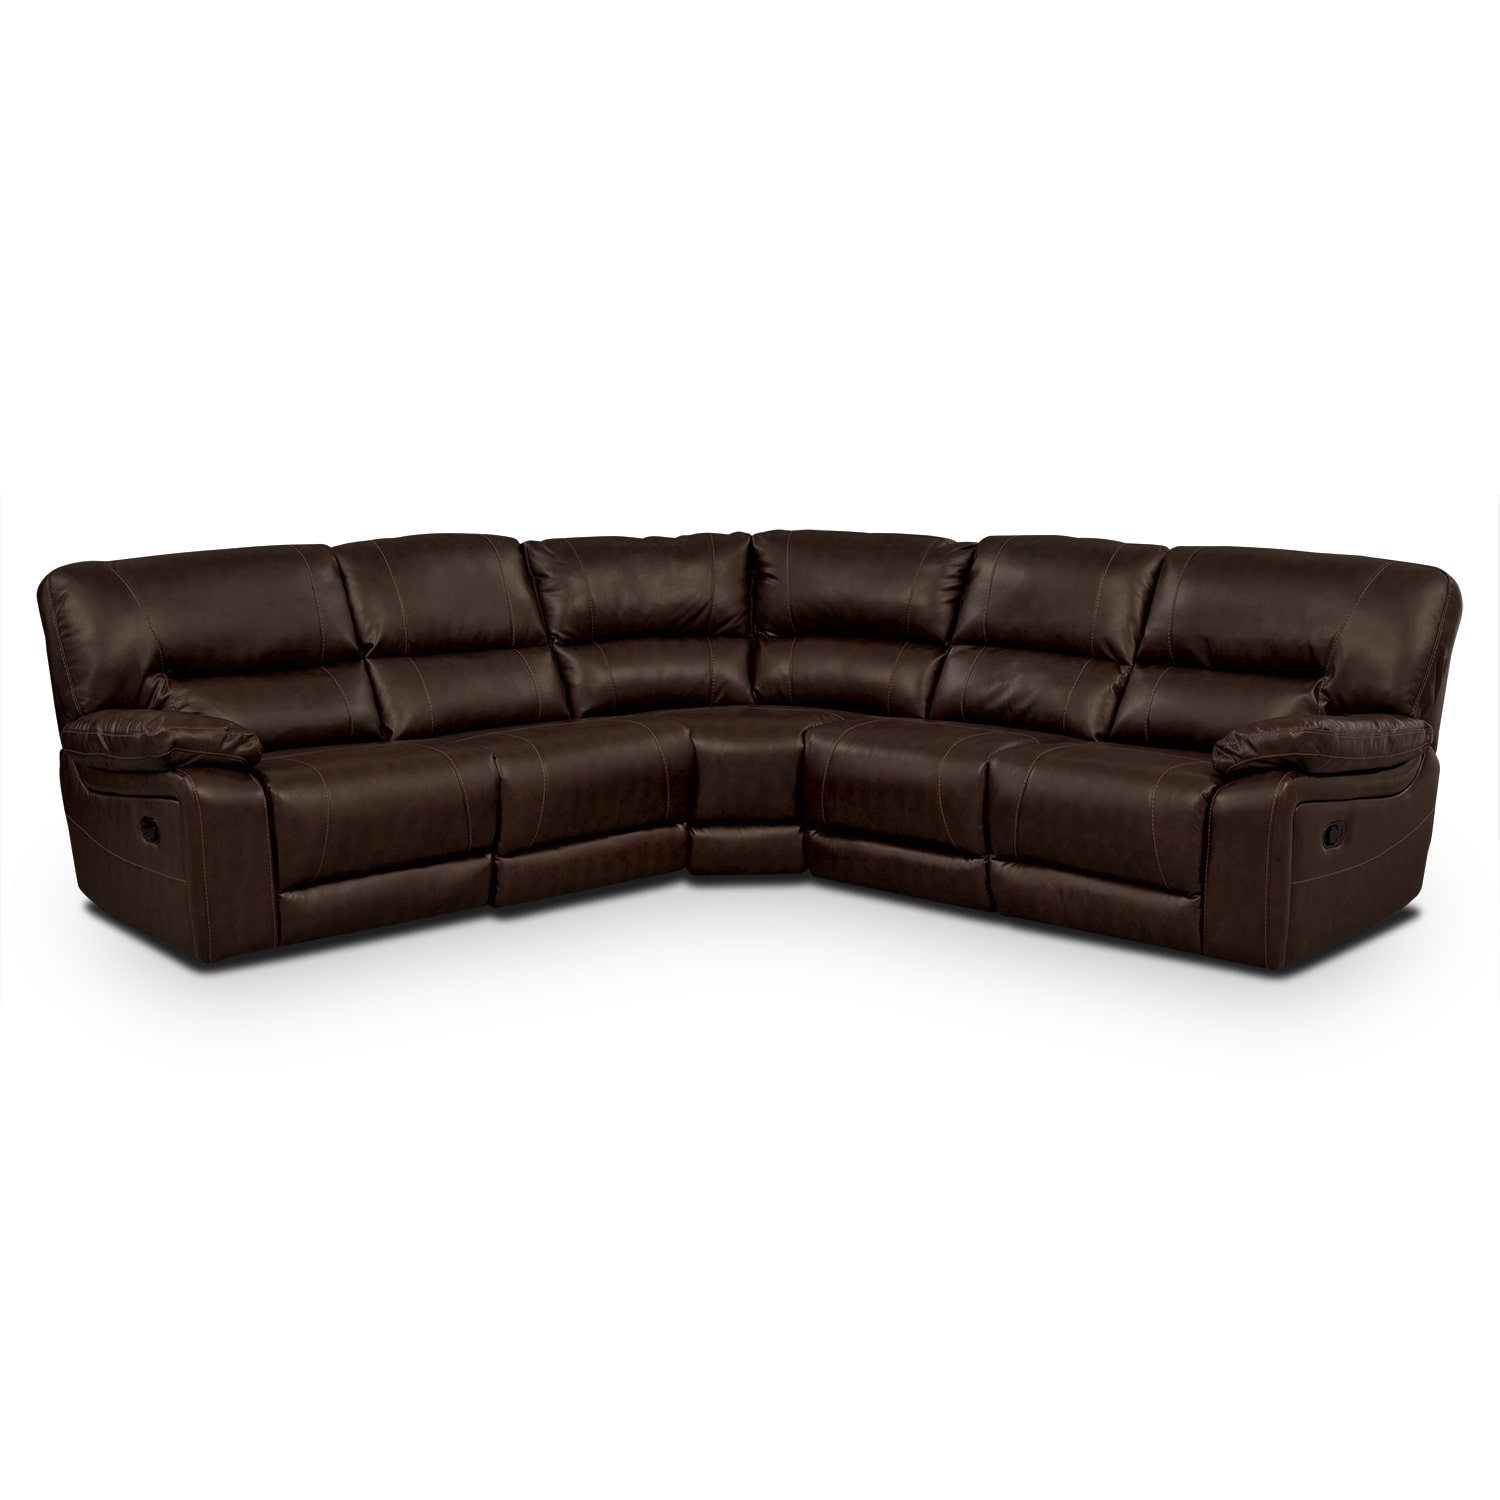 wyoming godiva leather 3 pc reclining sectional value